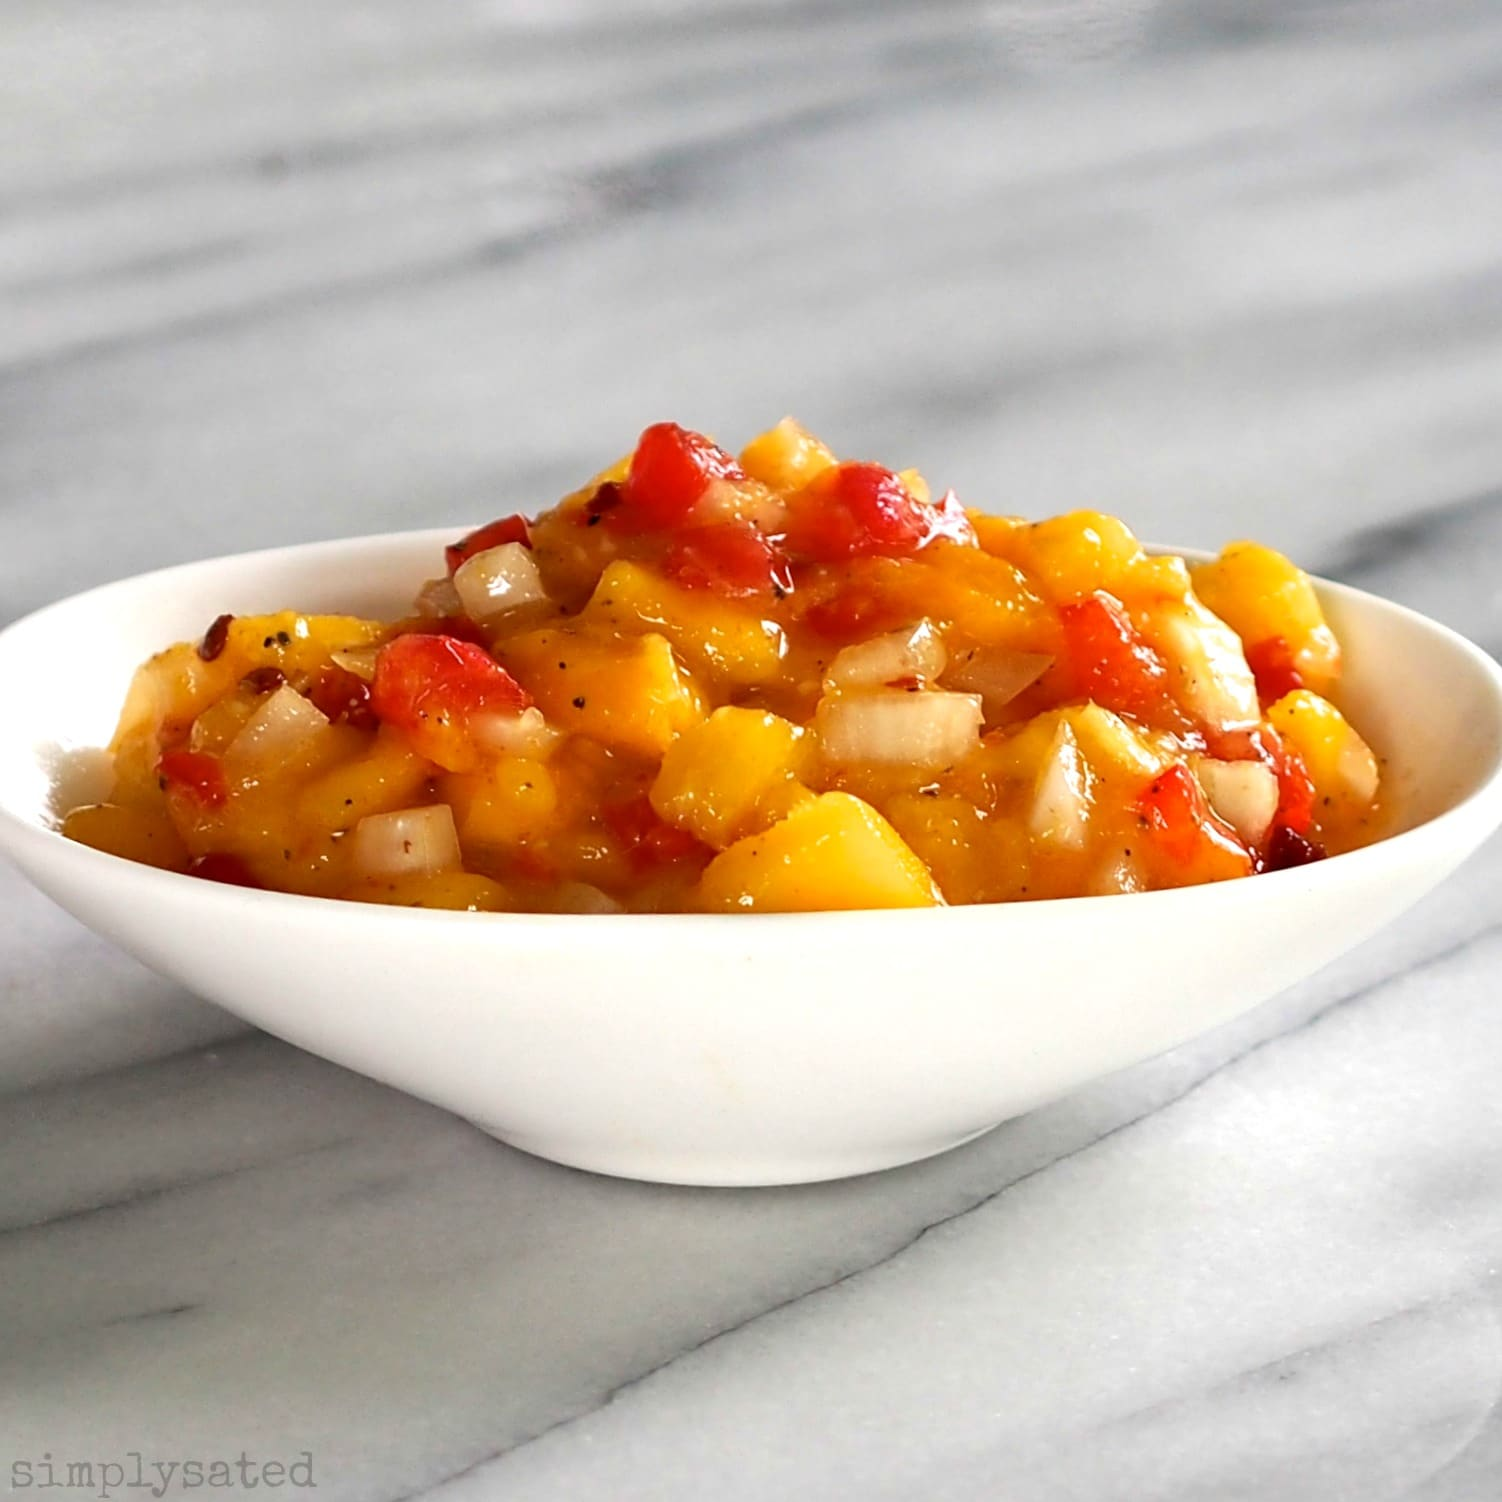 Molasses Dipped Chicken with Mango Salsa makes you feel like dancing. Chicken dipped in molasses, spiced-up and cooked. Top with sweet & spicy Mango Salsa.